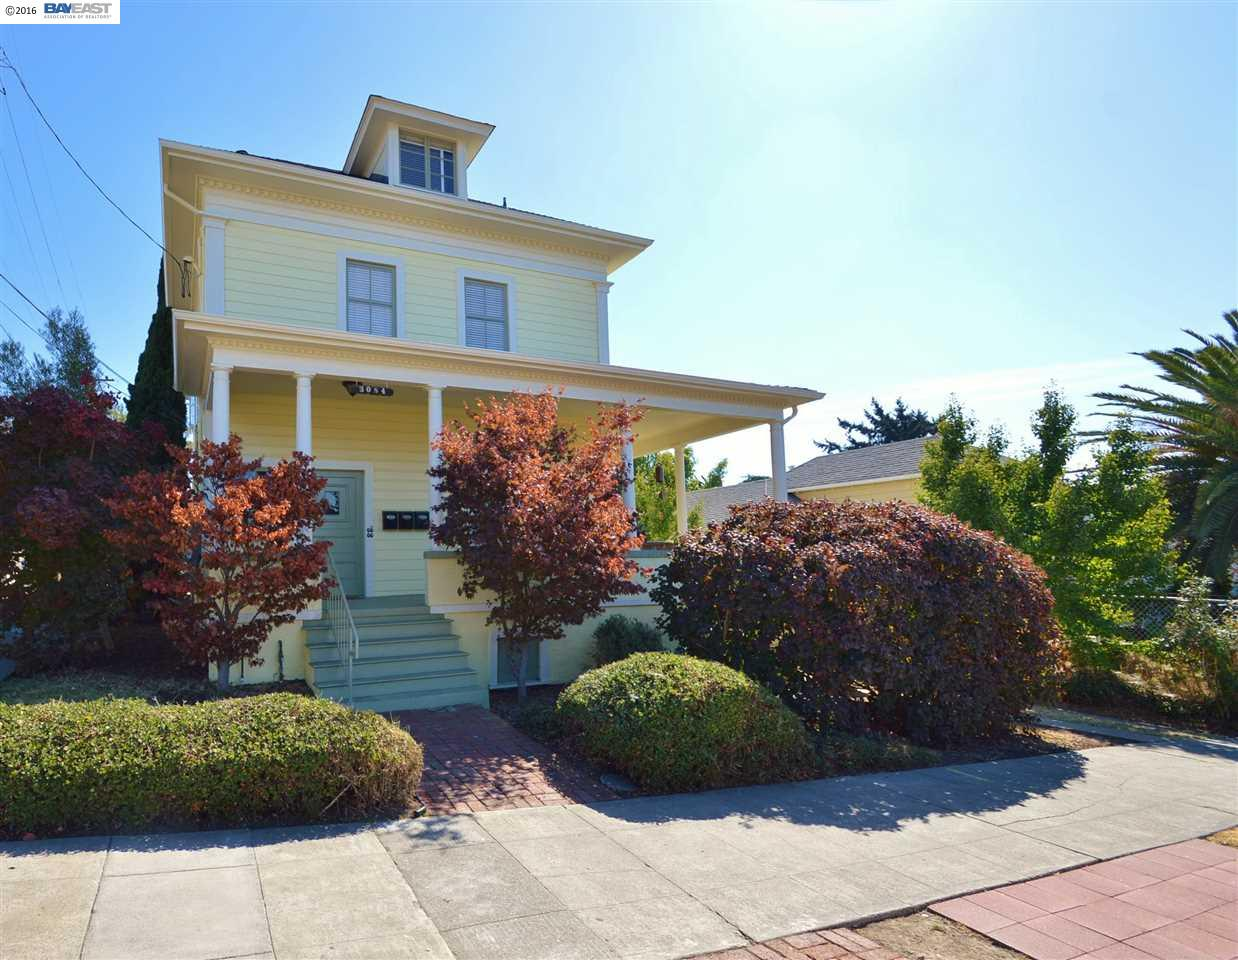 Additional photo for property listing at 3084 22nd Avenue 3084 22nd Avenue Oakland, California 94602 United States